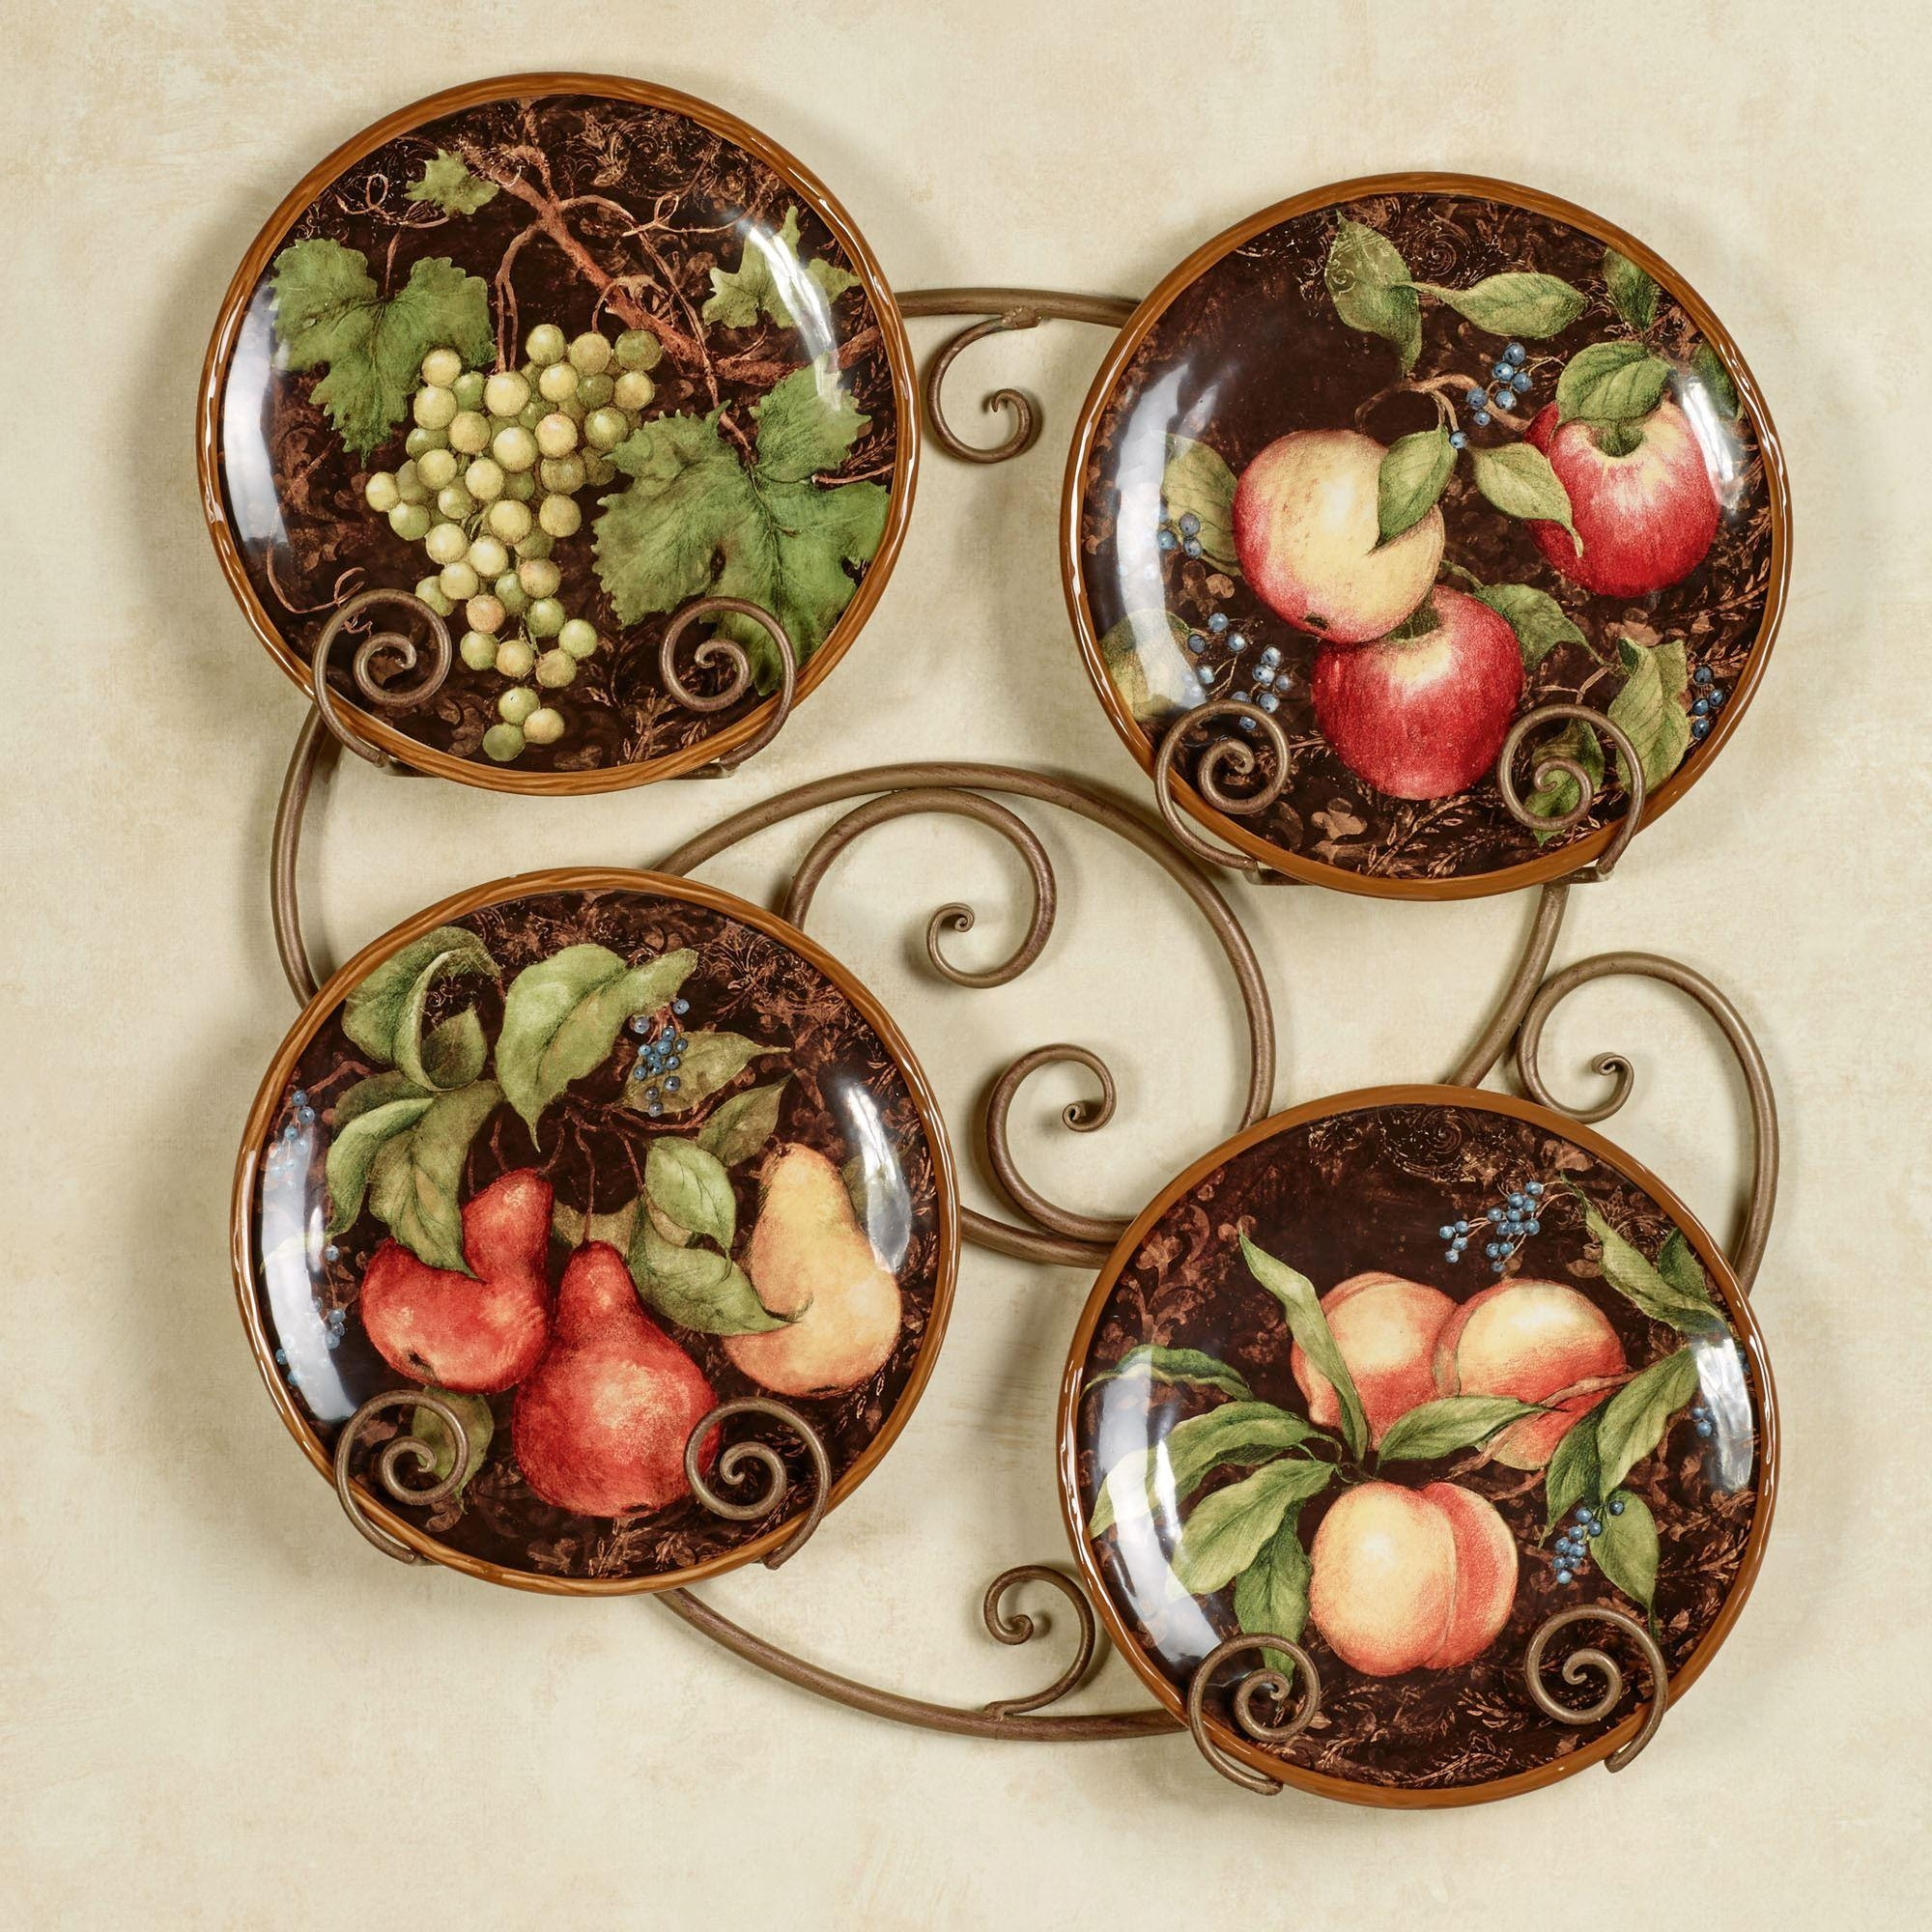 Tuscan And Italian Home Decor | Touch Of Class Within Italian Plates Wall Art (Image 12 of 20)